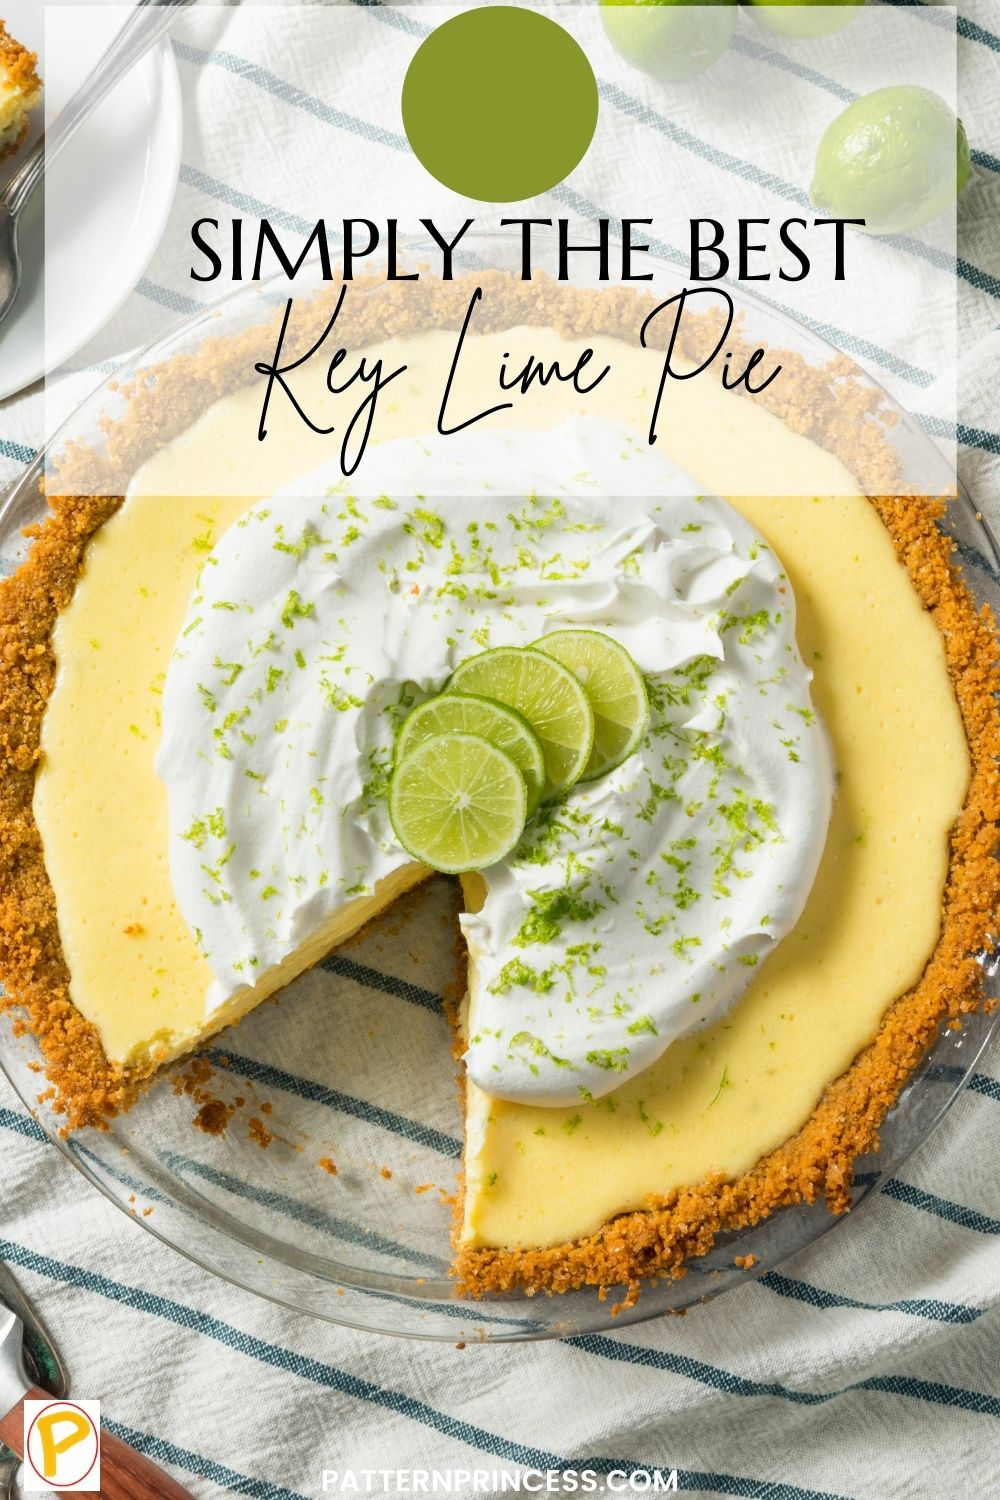 Simply the Best Key LIme Pie